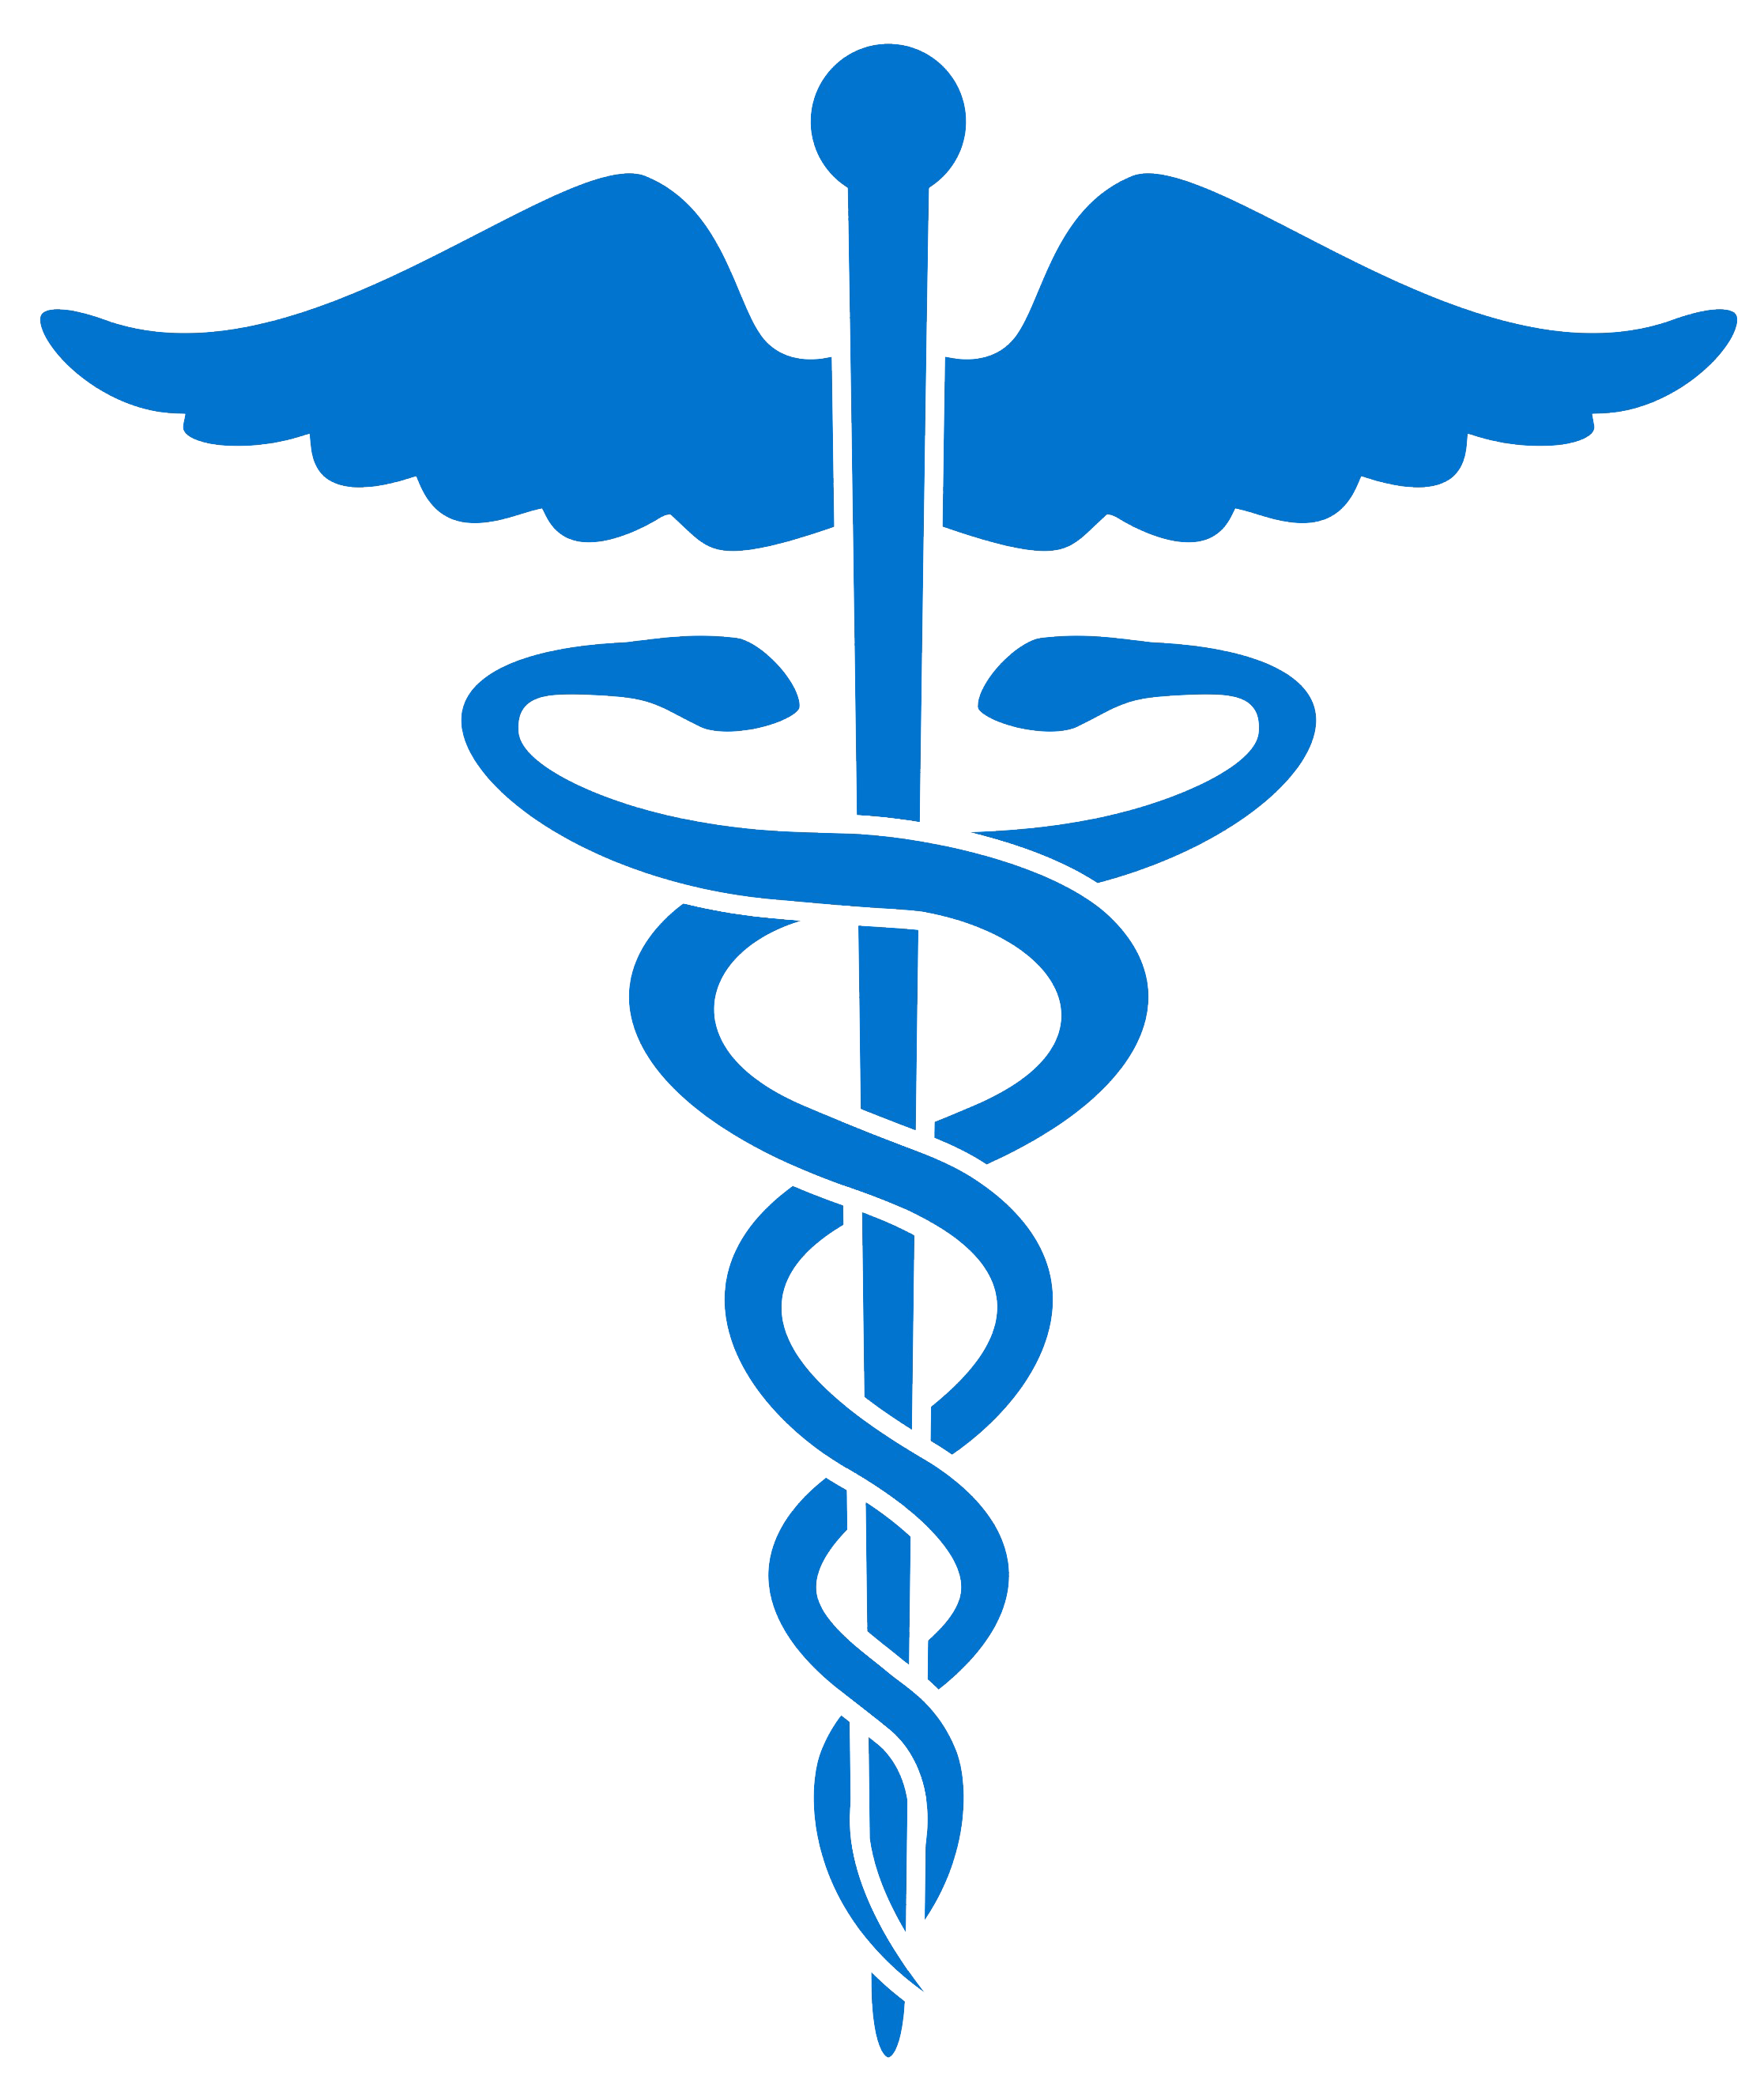 Doctor symbol png. Medical logo free transparent